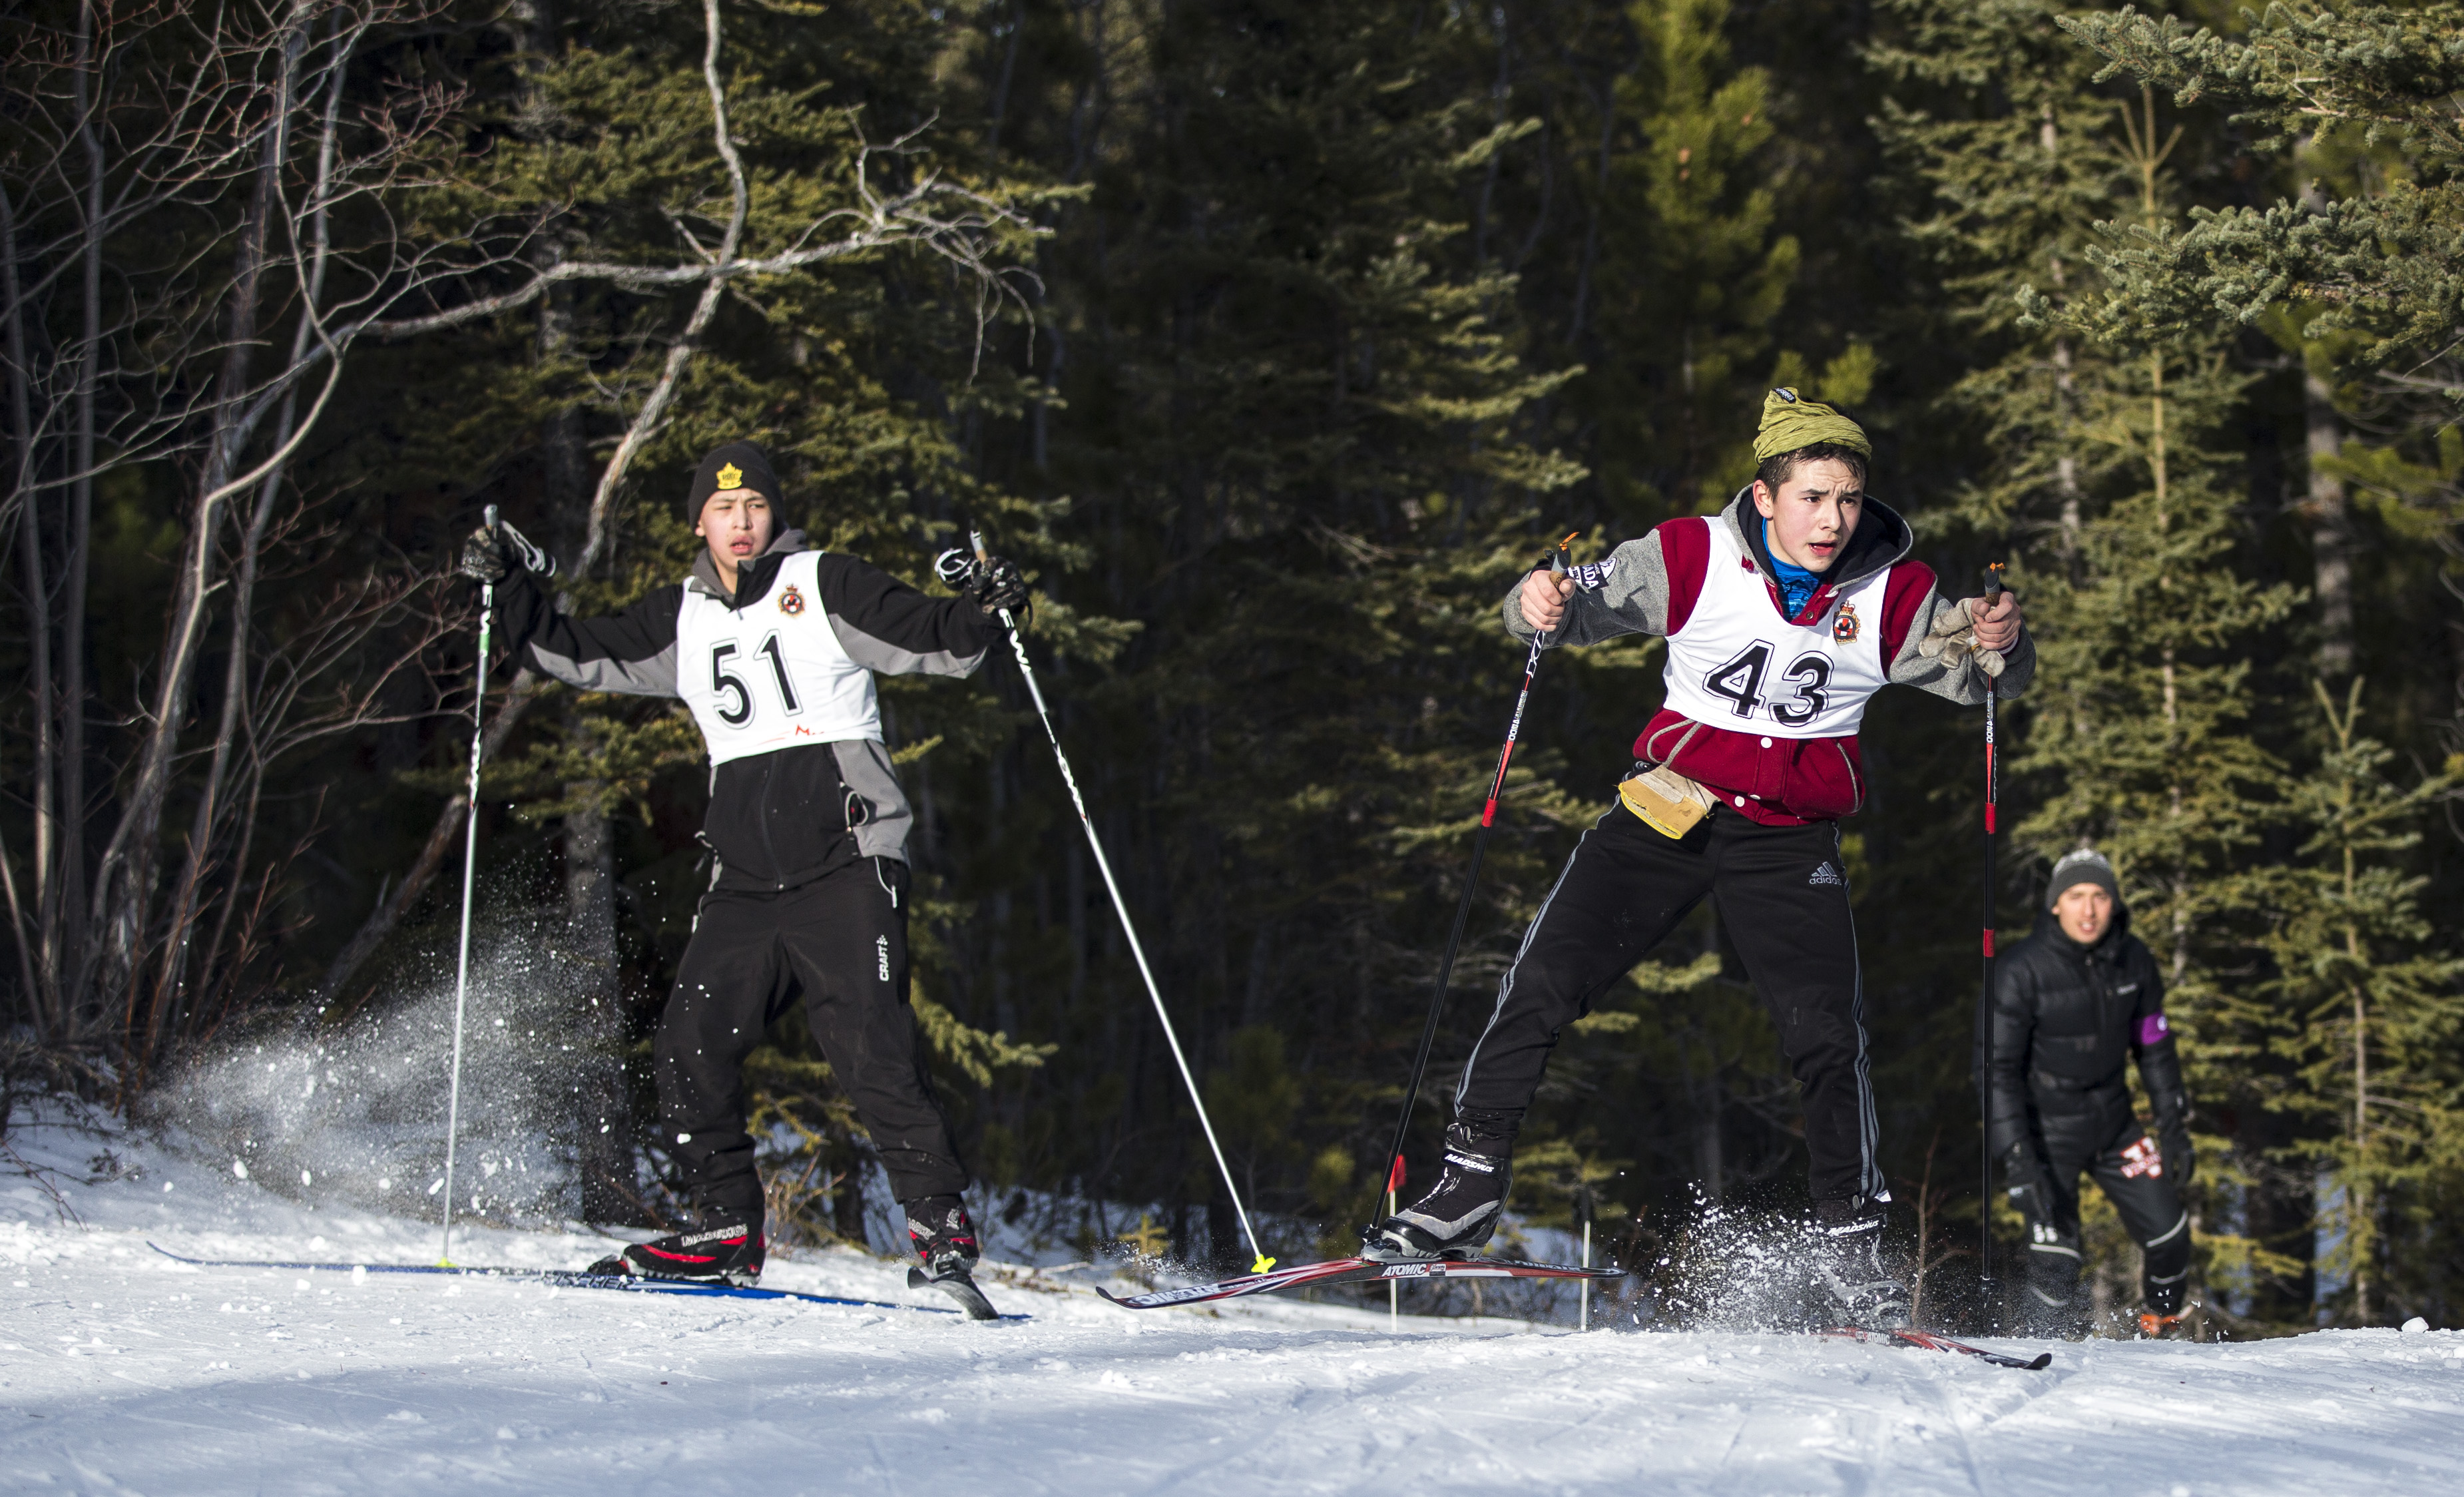 Cyril Angulalik (right) and Colin Tilley take part in the Northern Territorial Cadet Biathlon Championships at Grey Mountain in Whitehorse on Feb. 12, 2017. Photo by Marissa Tiel